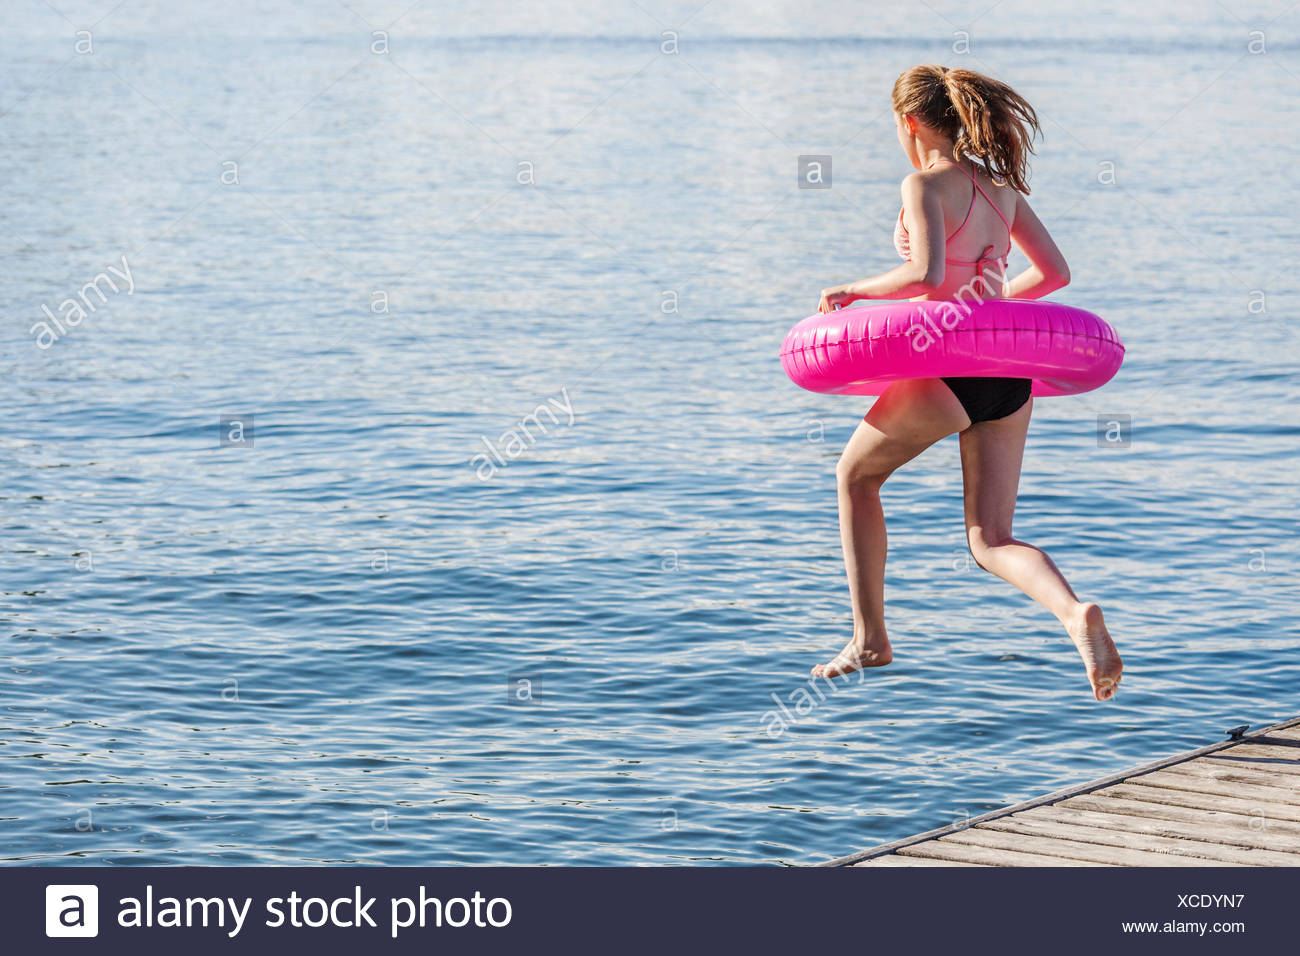 Girl jumping off a dock by Balsam Lake wearing inflatable ring; Ontario, Canada Stock Photo